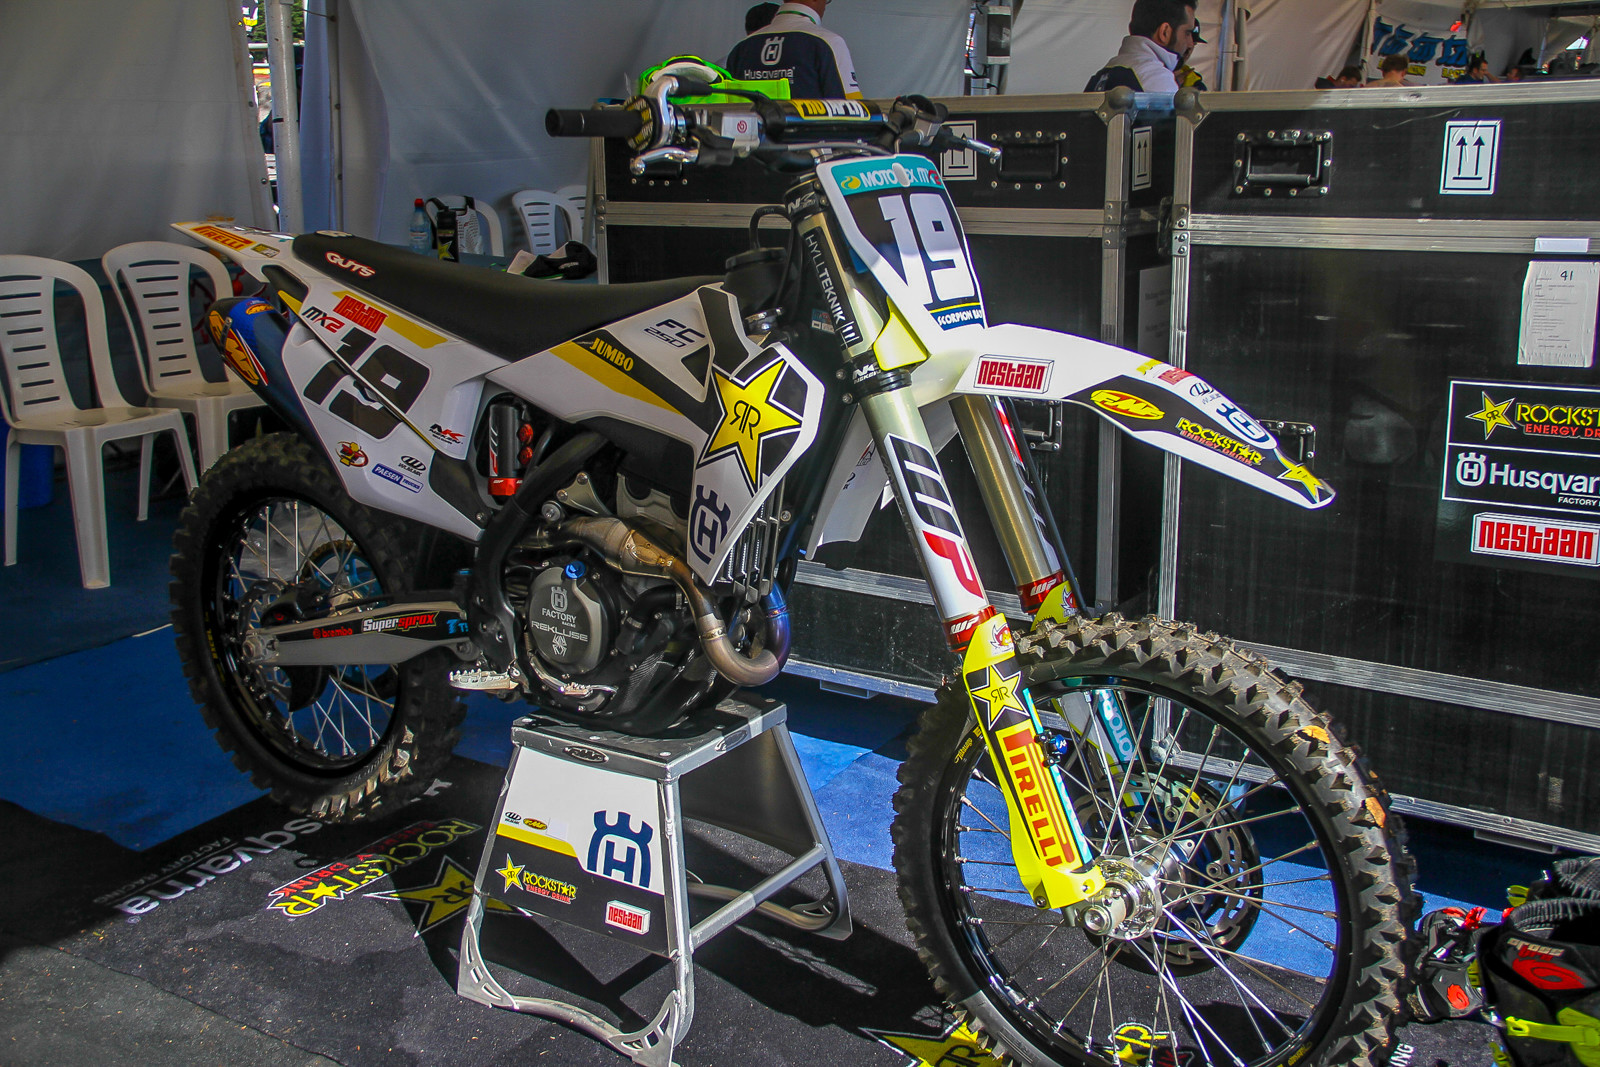 The Rockstar Husqvarna MX2 riders are already on the 2019 FC 250s, featuring the new chassis, subframe and complete bodywork.